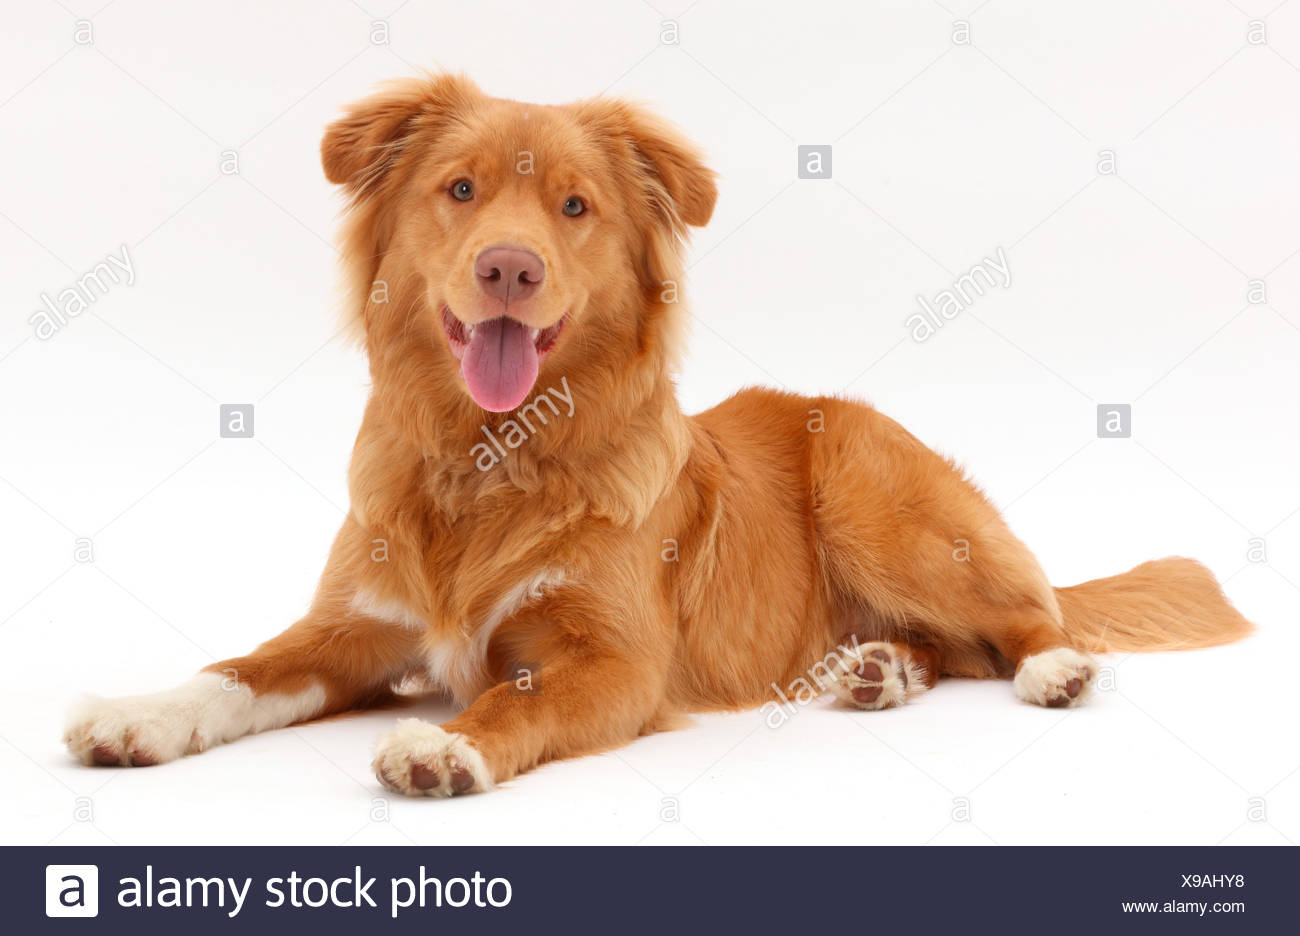 Nova Scotia Duck Tolling Retriever dog, age 6 months. - Stock Image